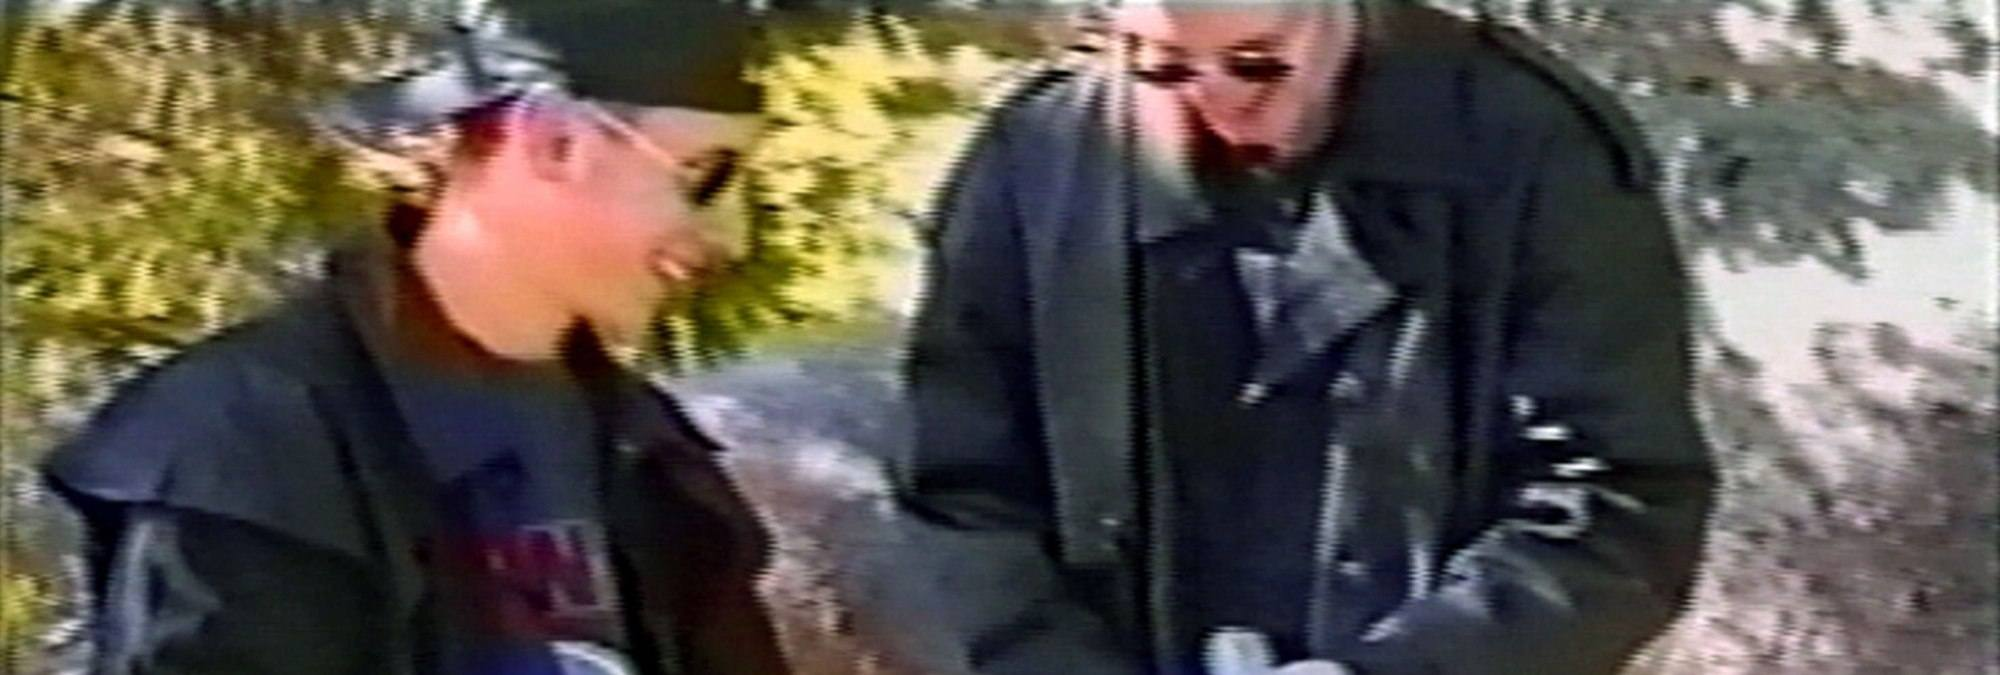 The Trenchcoat Mafia And Other Columbine Myths